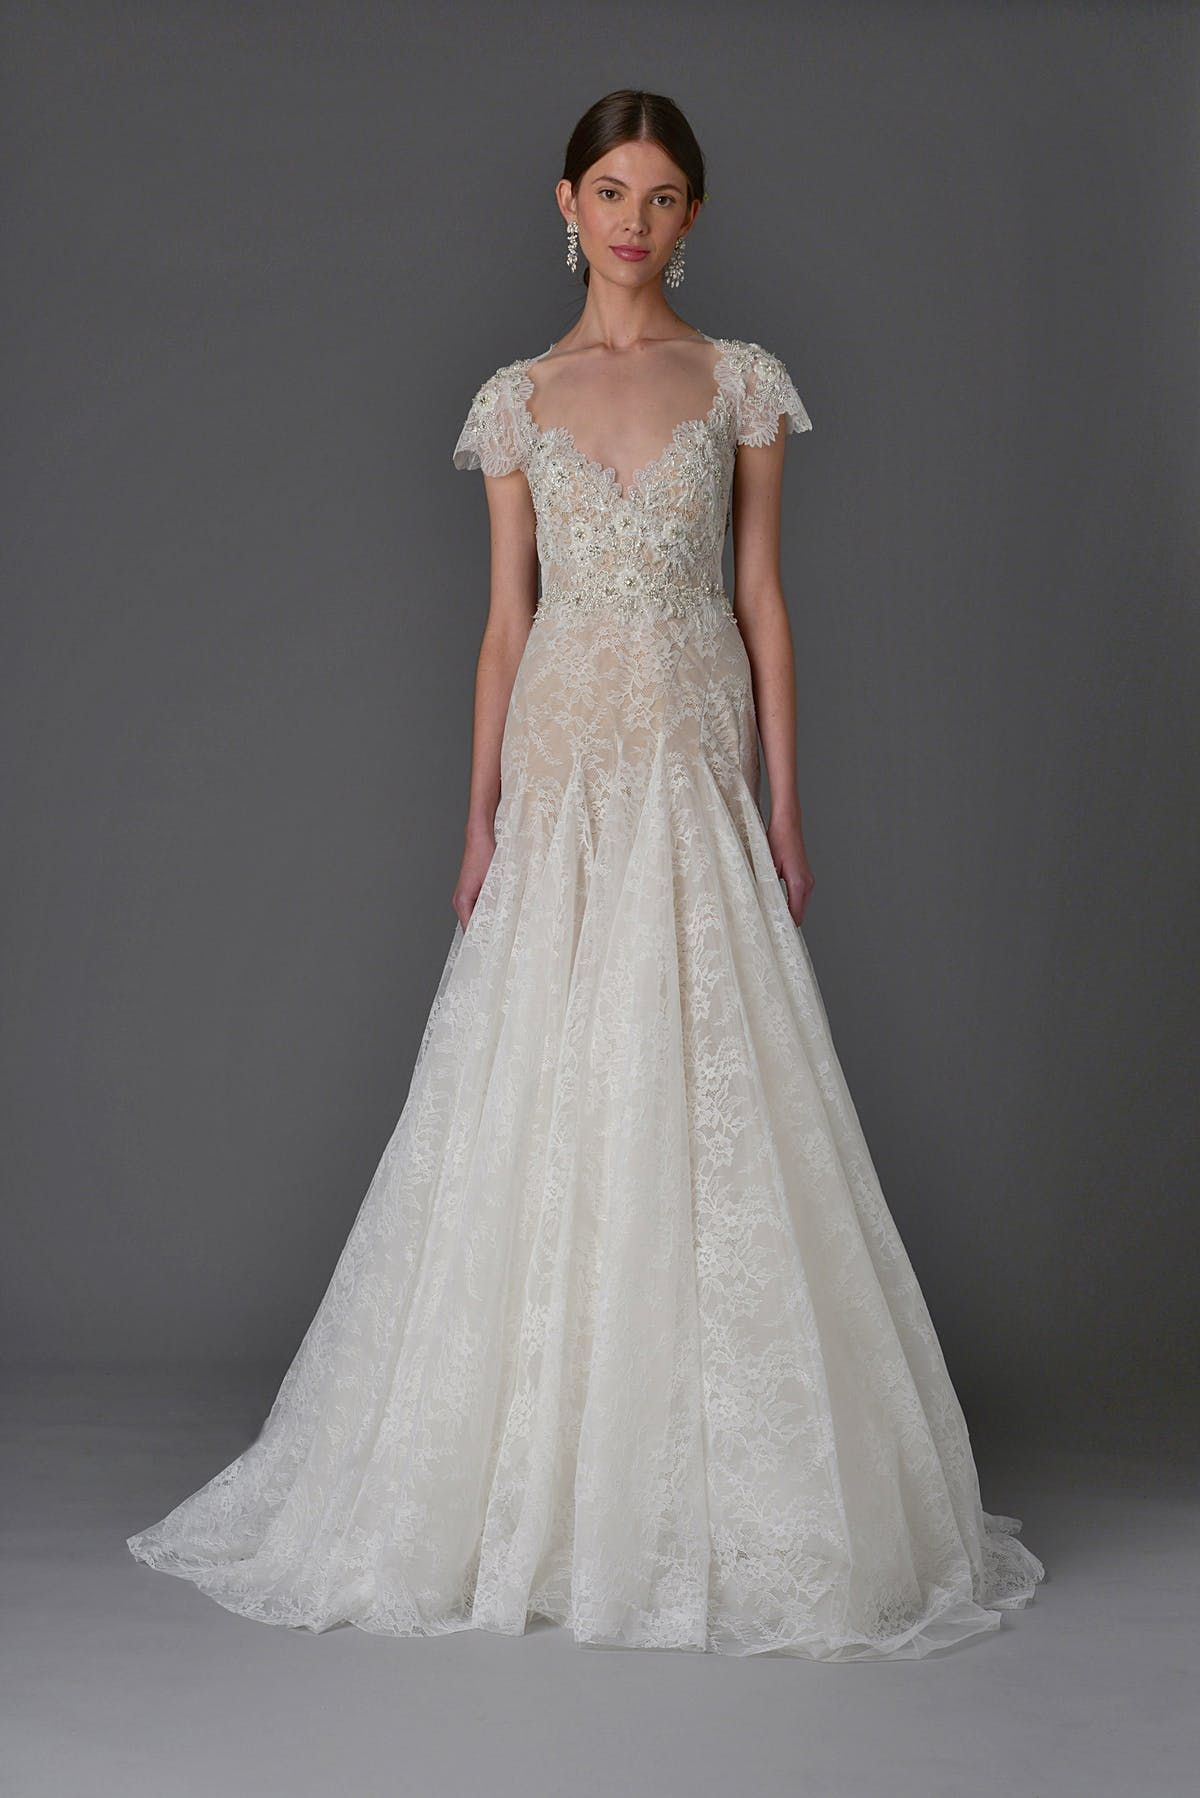 50eec5221e This Year's Hottest Trends with Marchesa #weddingdresstrends #lace #marchesa  Photo by FirstView